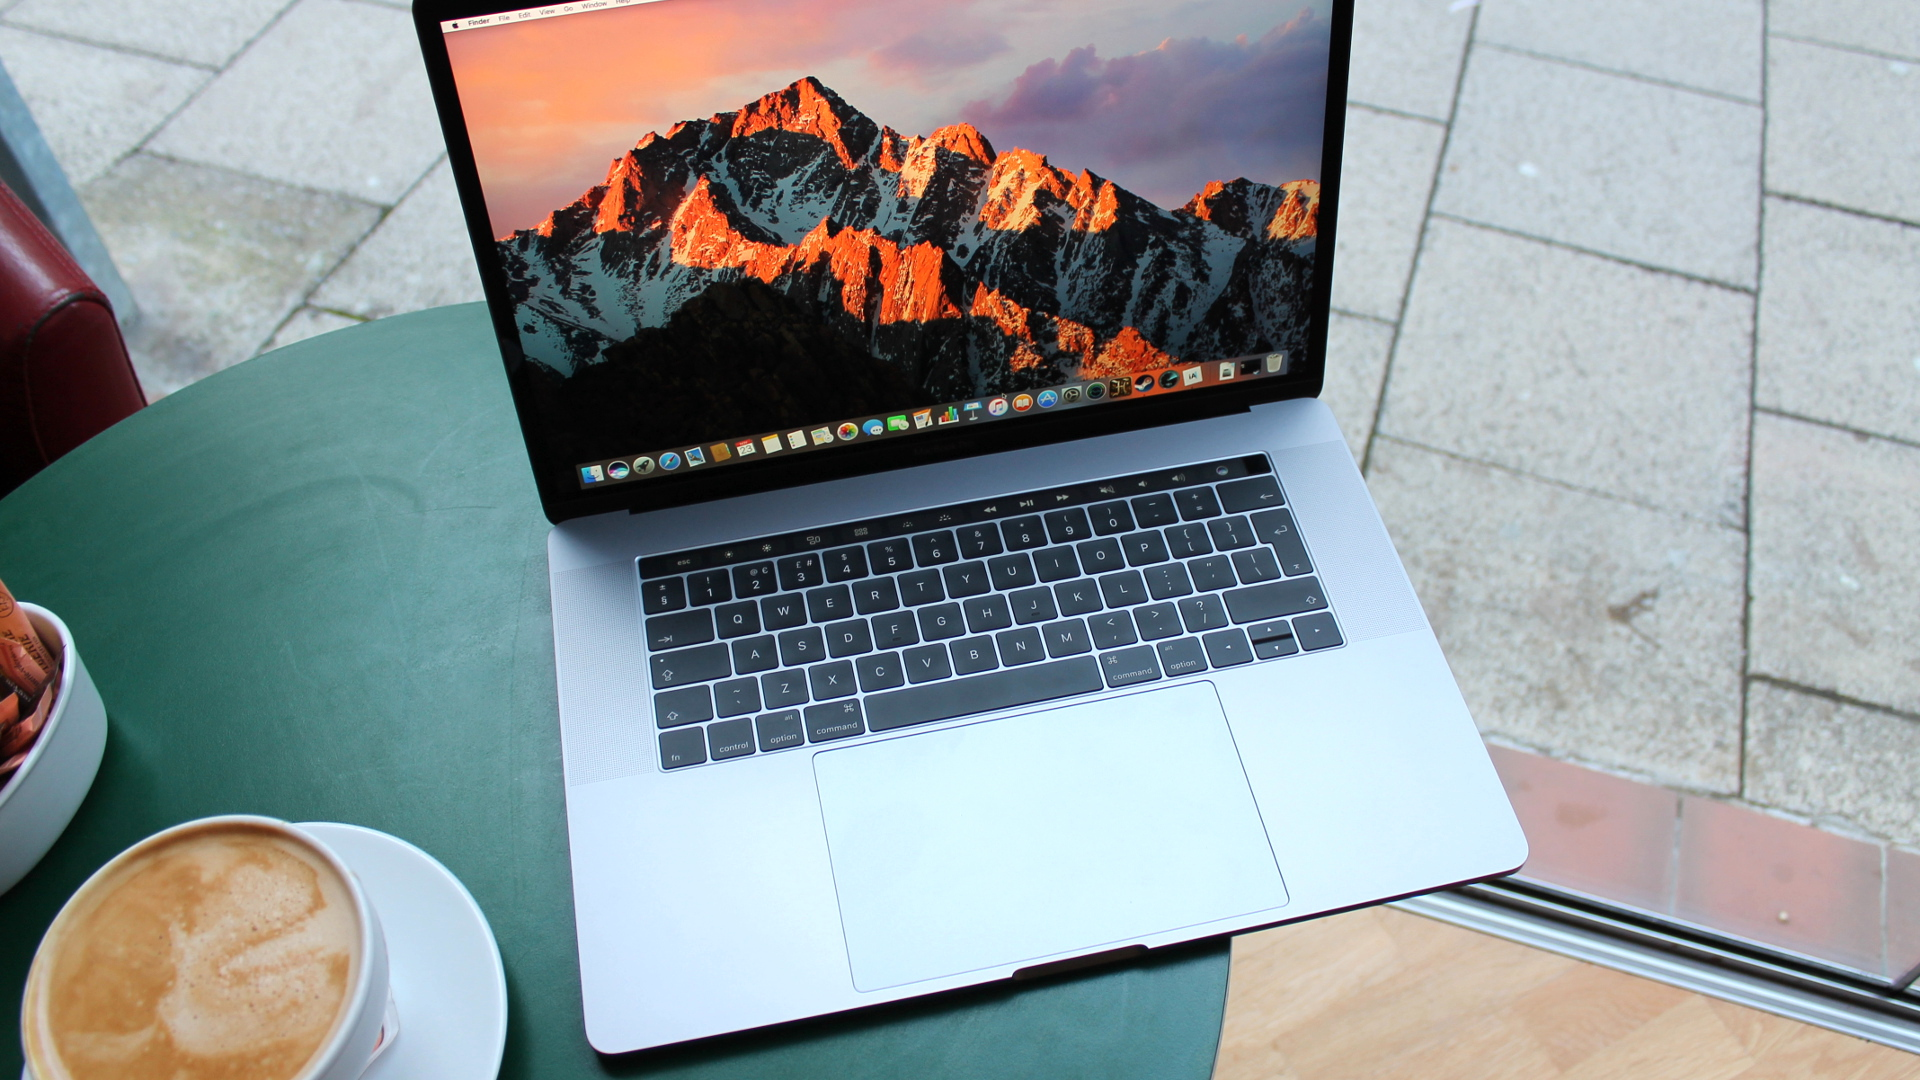 15-inch MacBook Pro with Retina